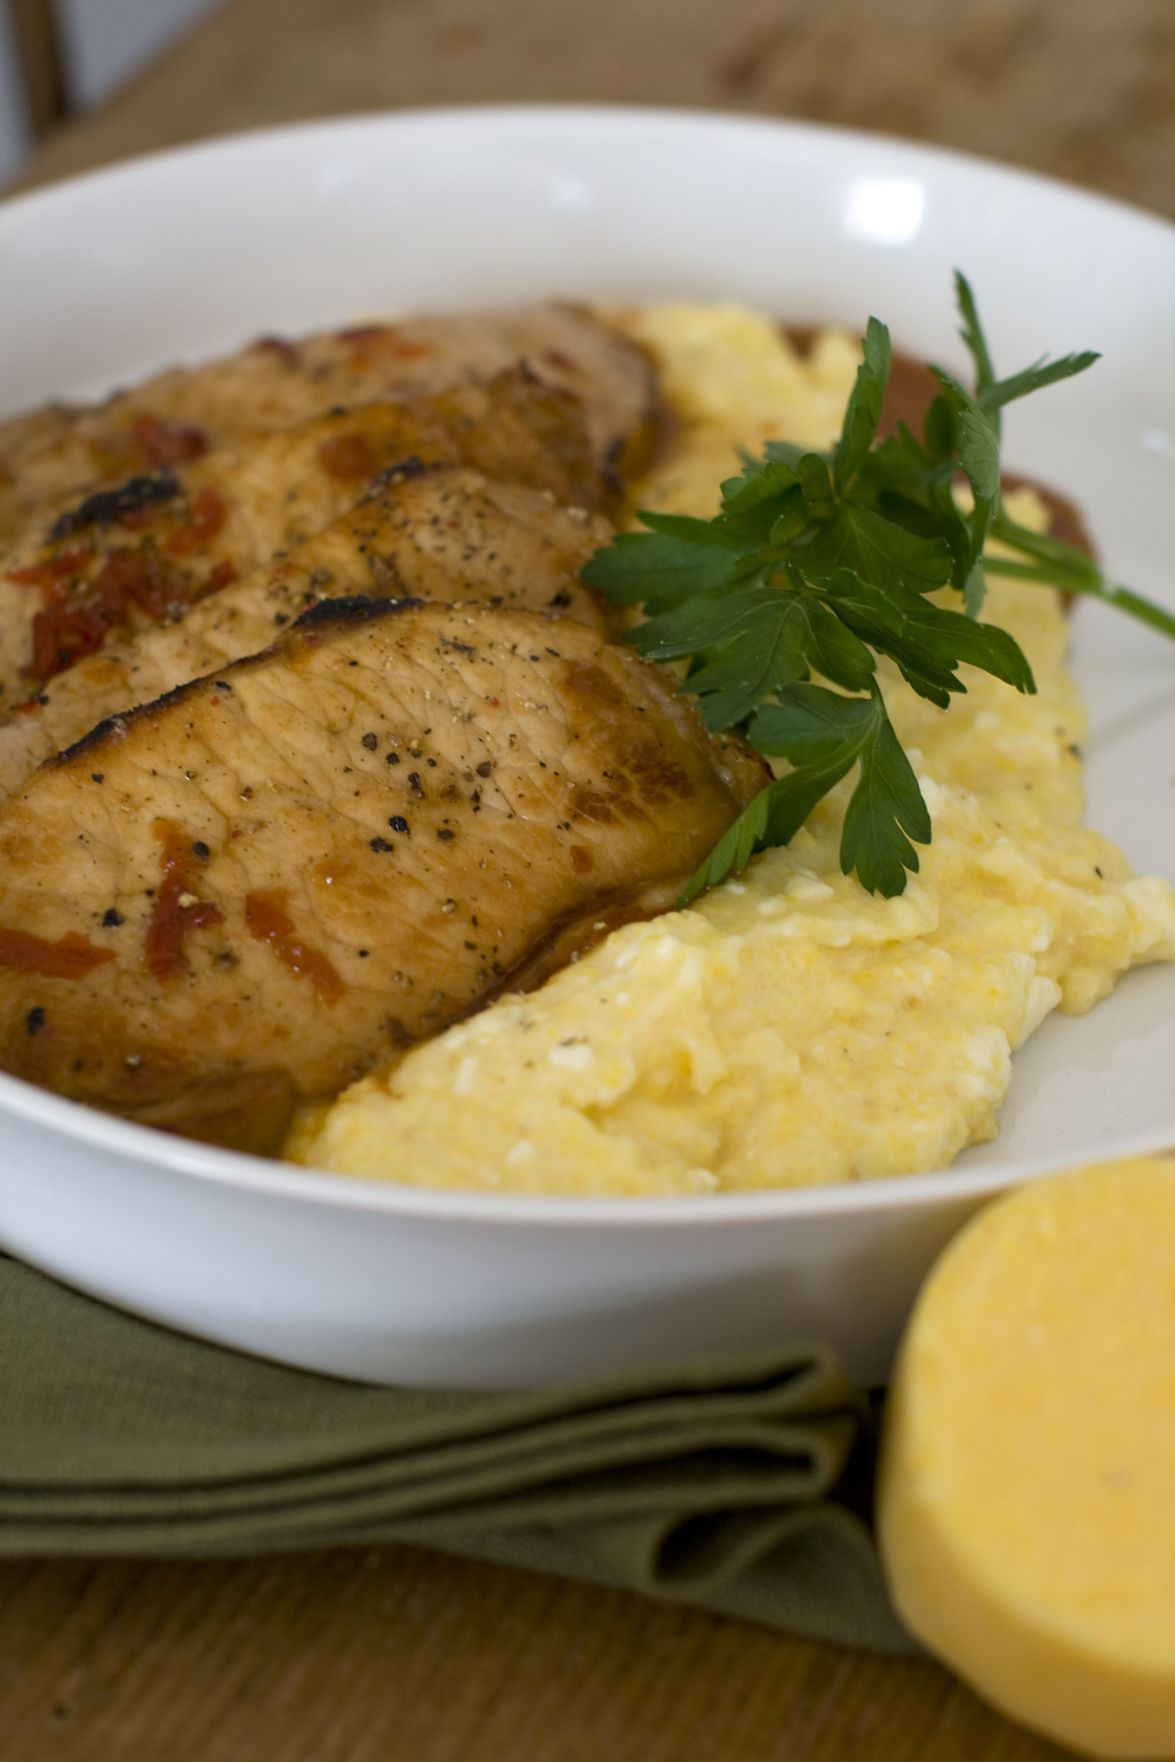 Prepared polenta: What it is and how to use it